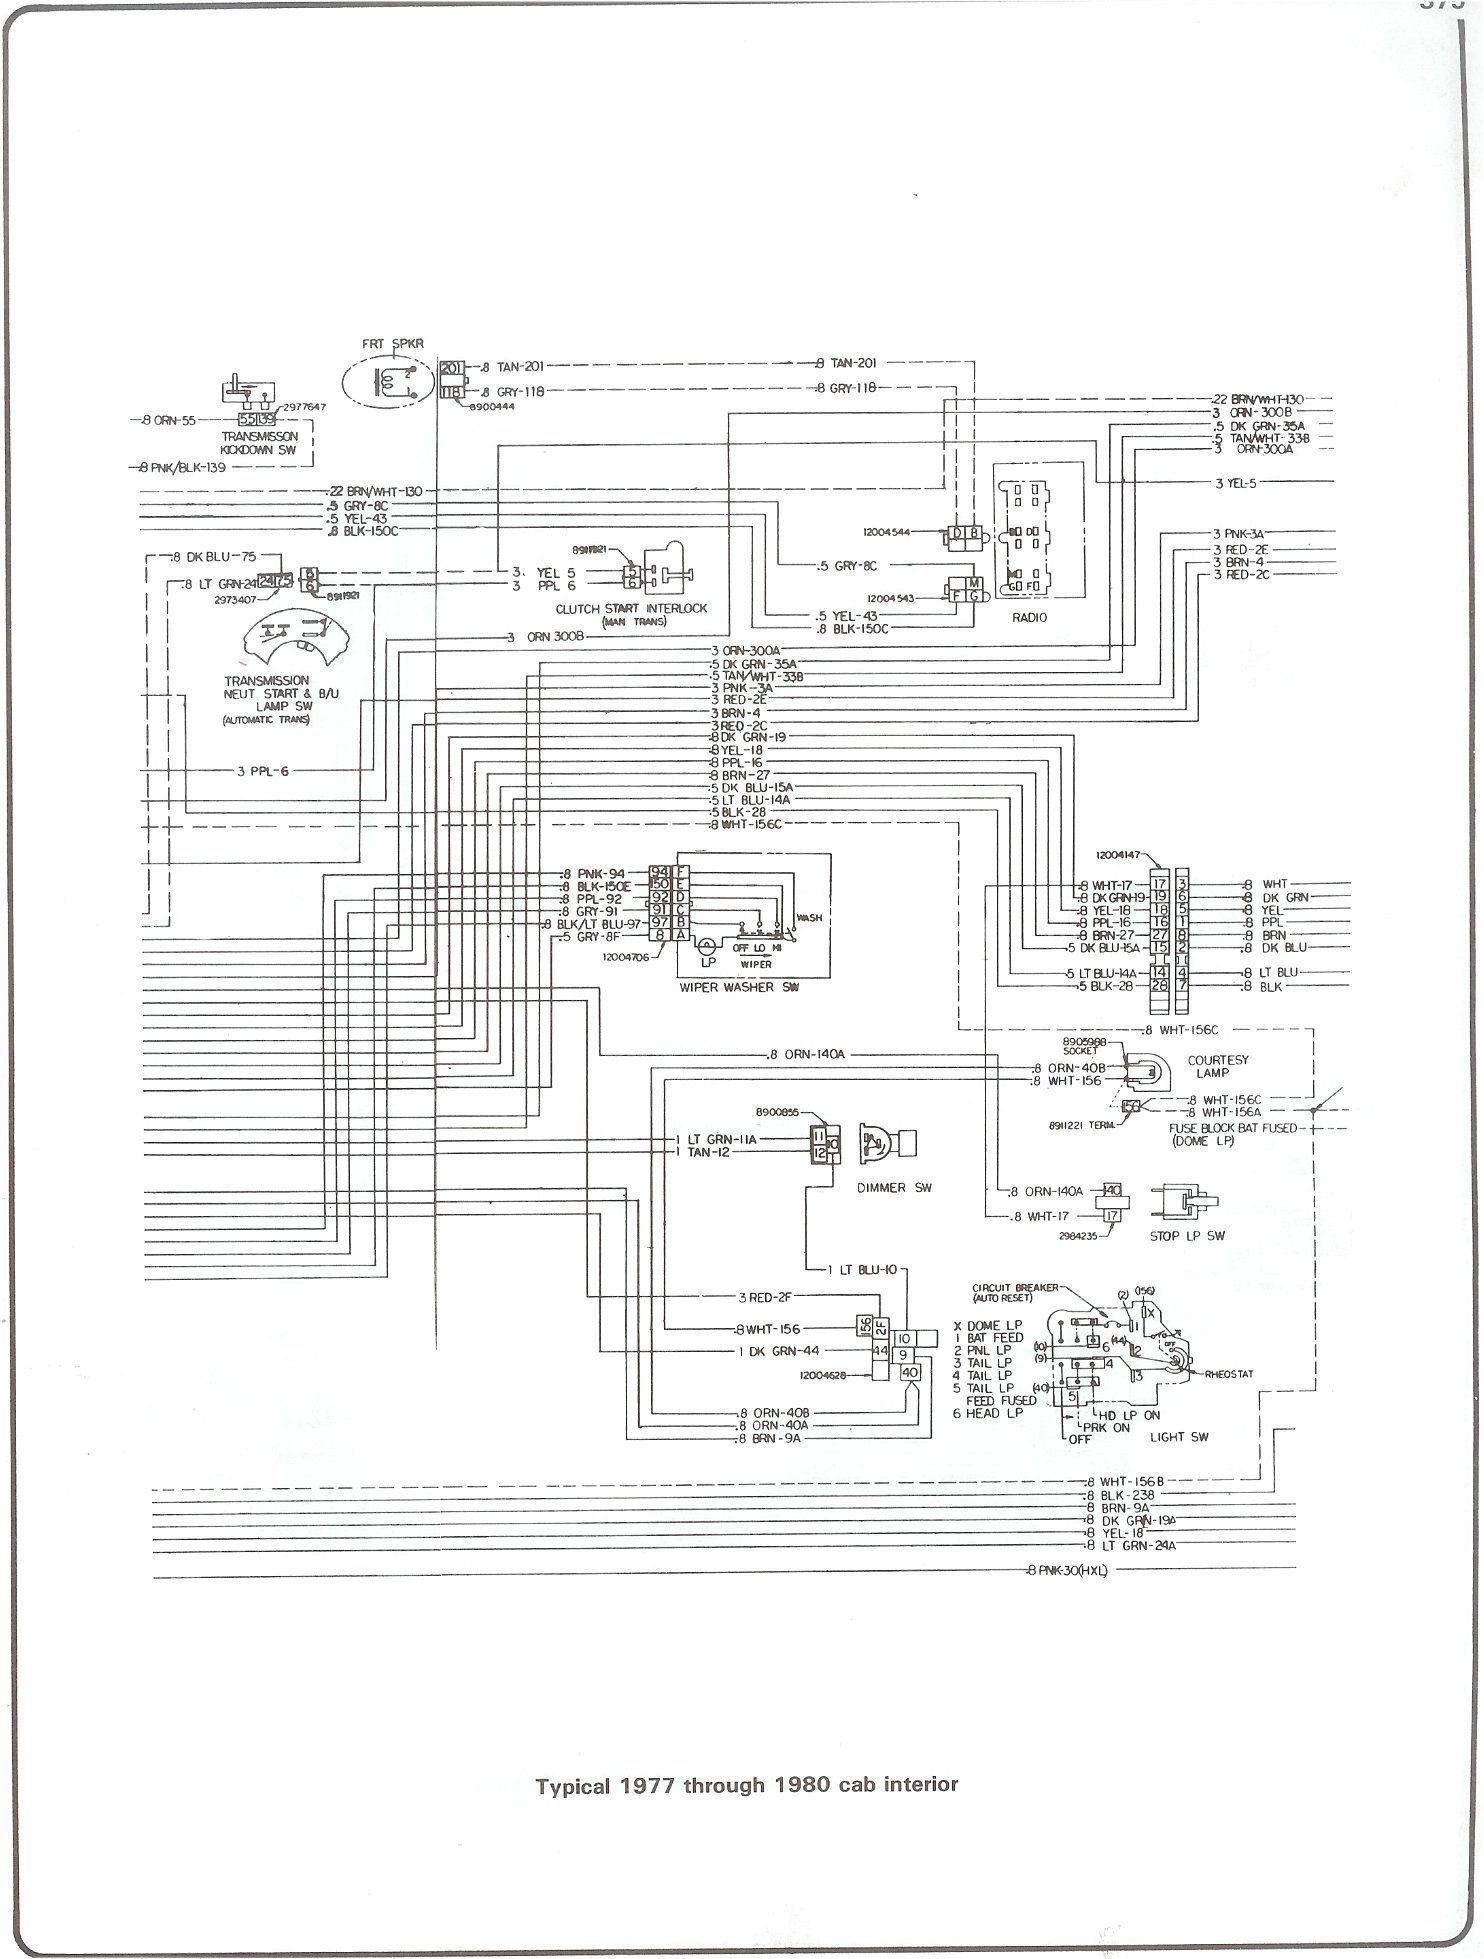 1972 firebird wiper motor wiring diagram